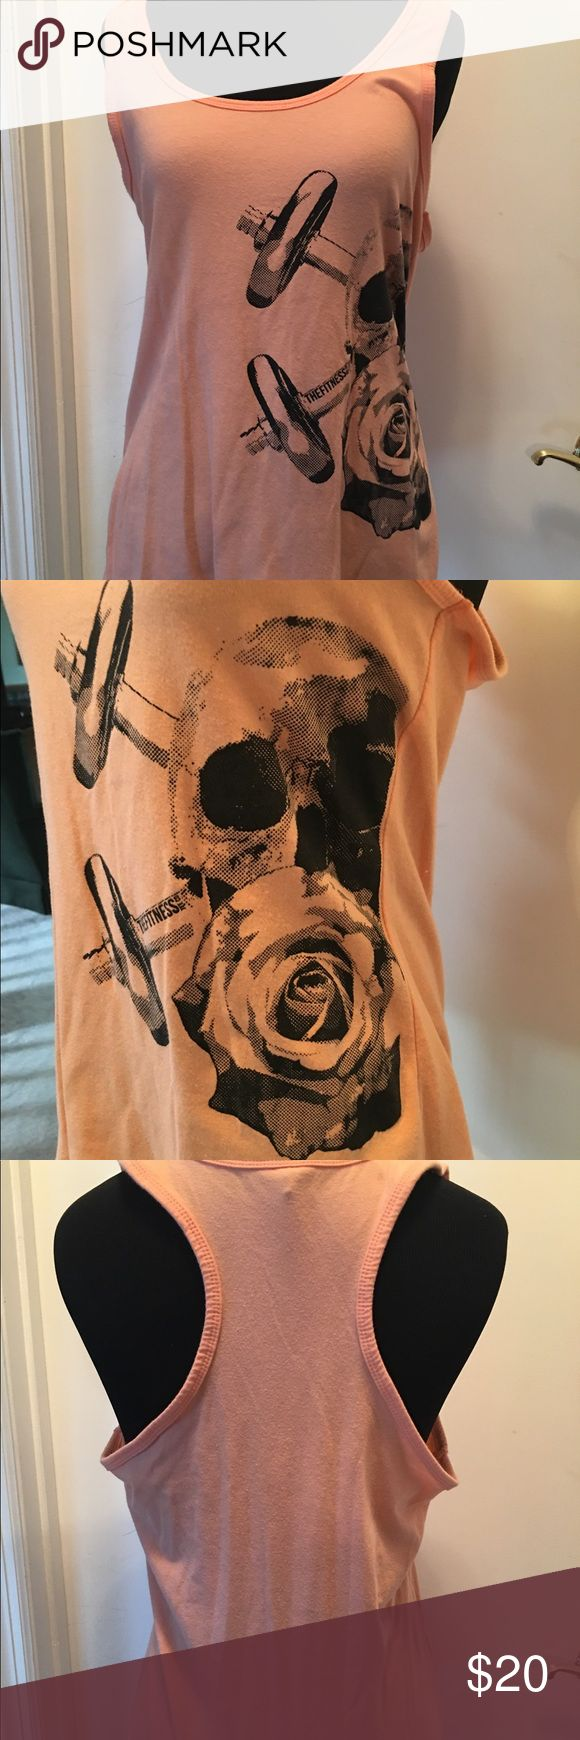 FITNESS COMPANY WORKOUT TANK FITNESS COMPANY WORKOUT TANK. Peach colored cotton tank. Skull with roses and barbells. Worn once. Size large. Feel free to make an offer. No trades please. Happy poshing!!❤️ Tops Tank Tops